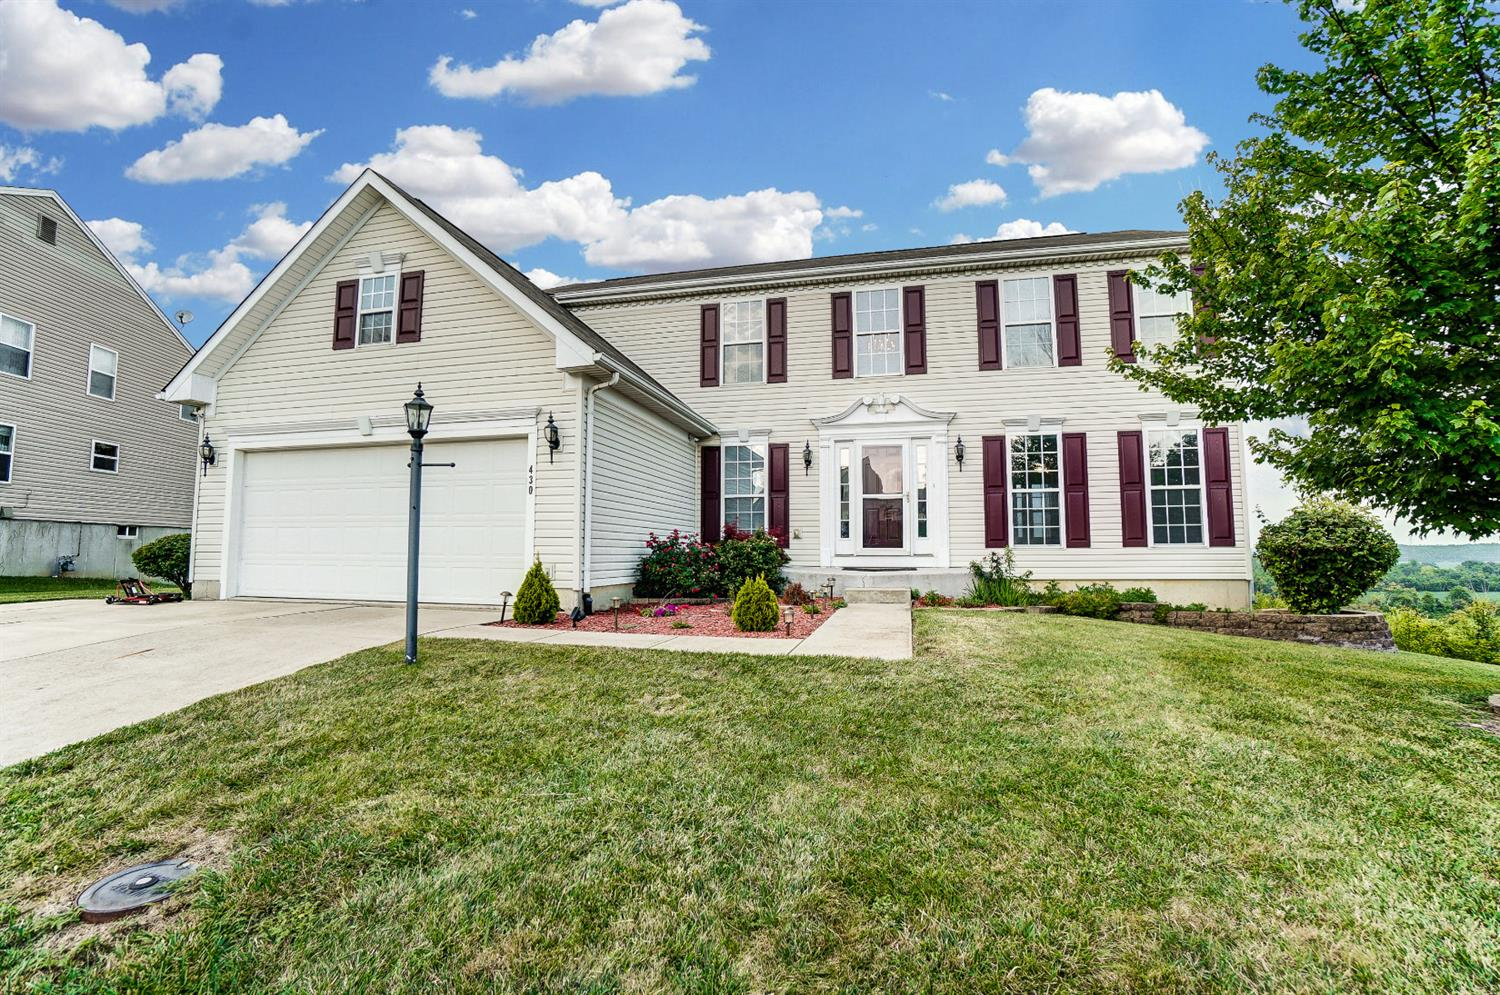 430 Canterbury Court, Monroe, Ohio 45050, 4 Bedrooms Bedrooms, 13 Rooms Rooms,2 BathroomsBathrooms,Single Family Residence,For Sale,Canterbury,1715160